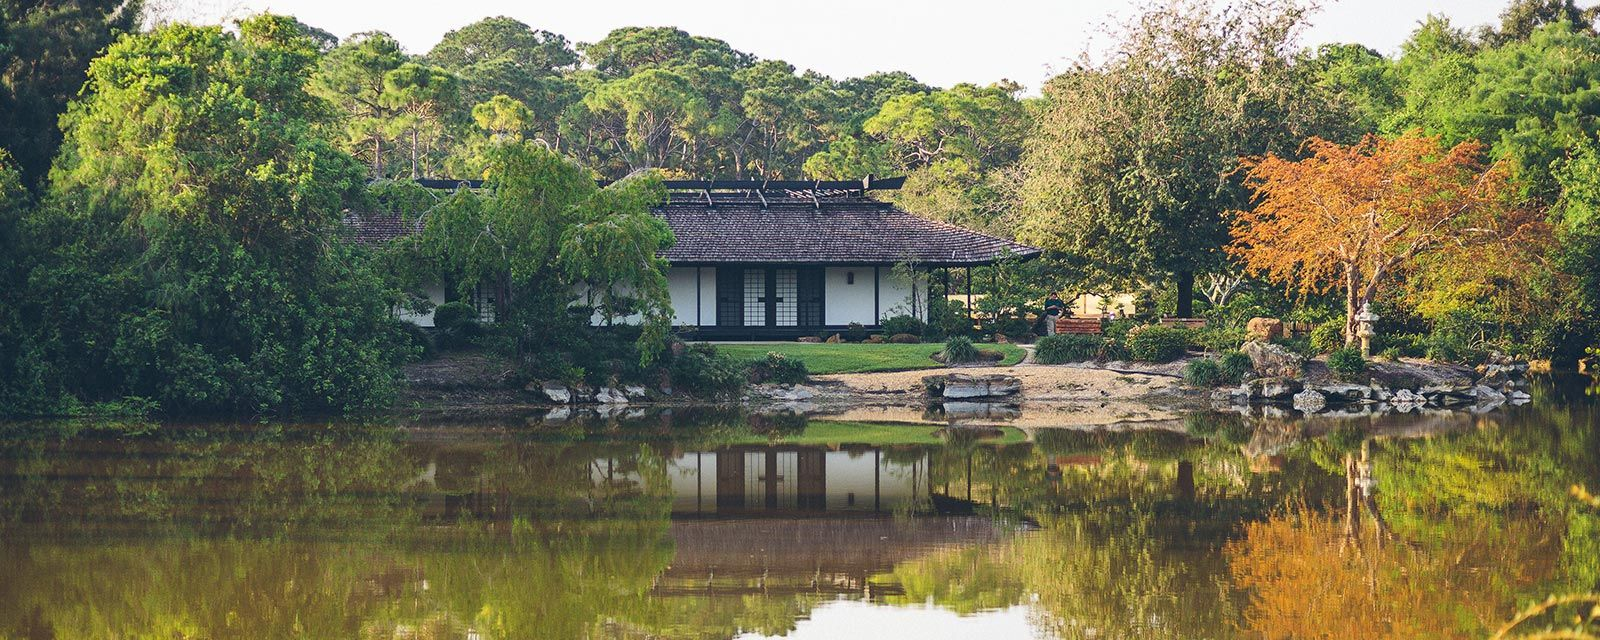 Morikami Museum Japanese Gardens Palm Beach To Do Travel Pinterest